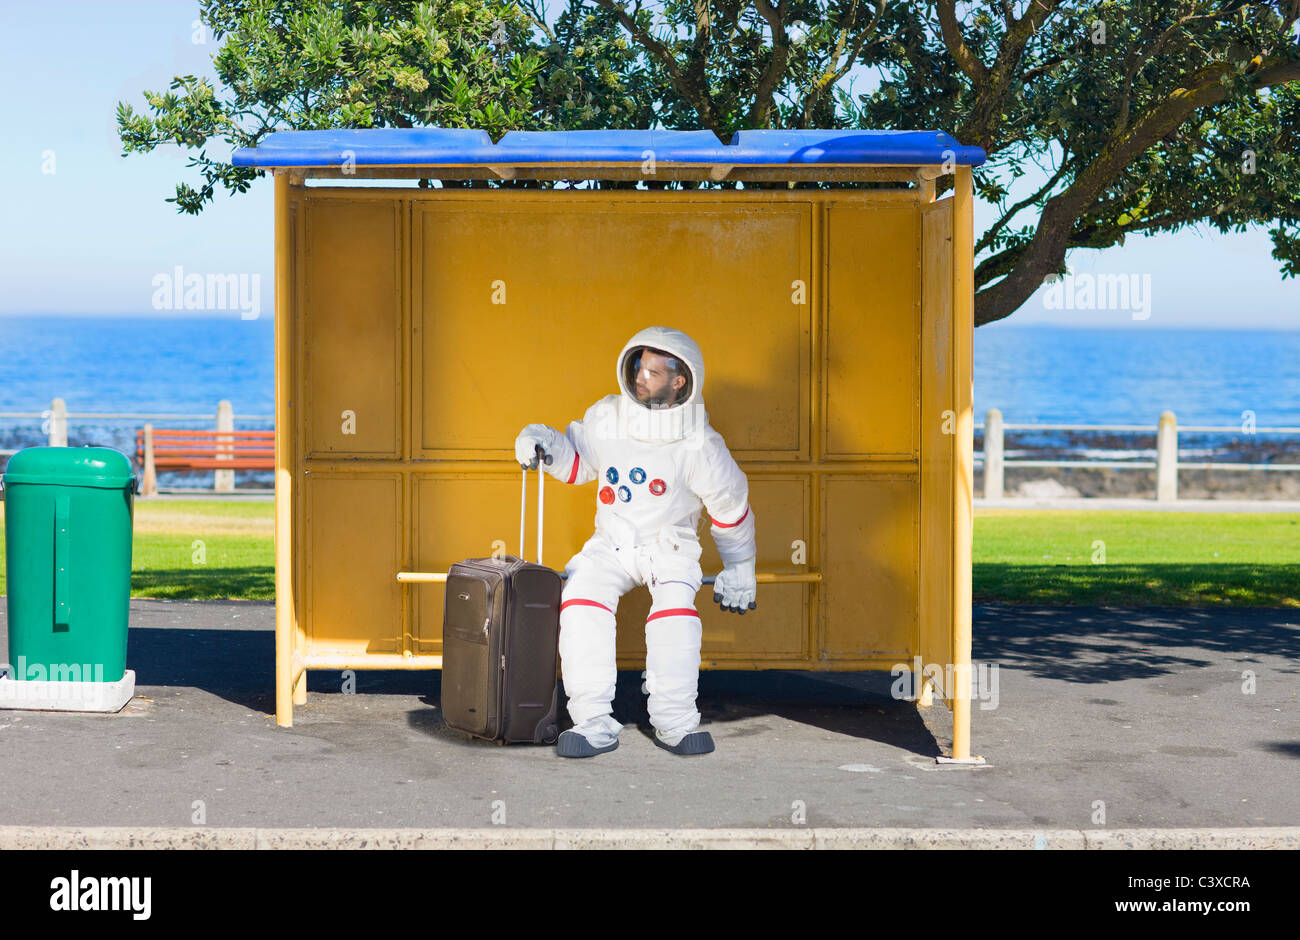 Astronaut waiting for the shuttle - Stock Image